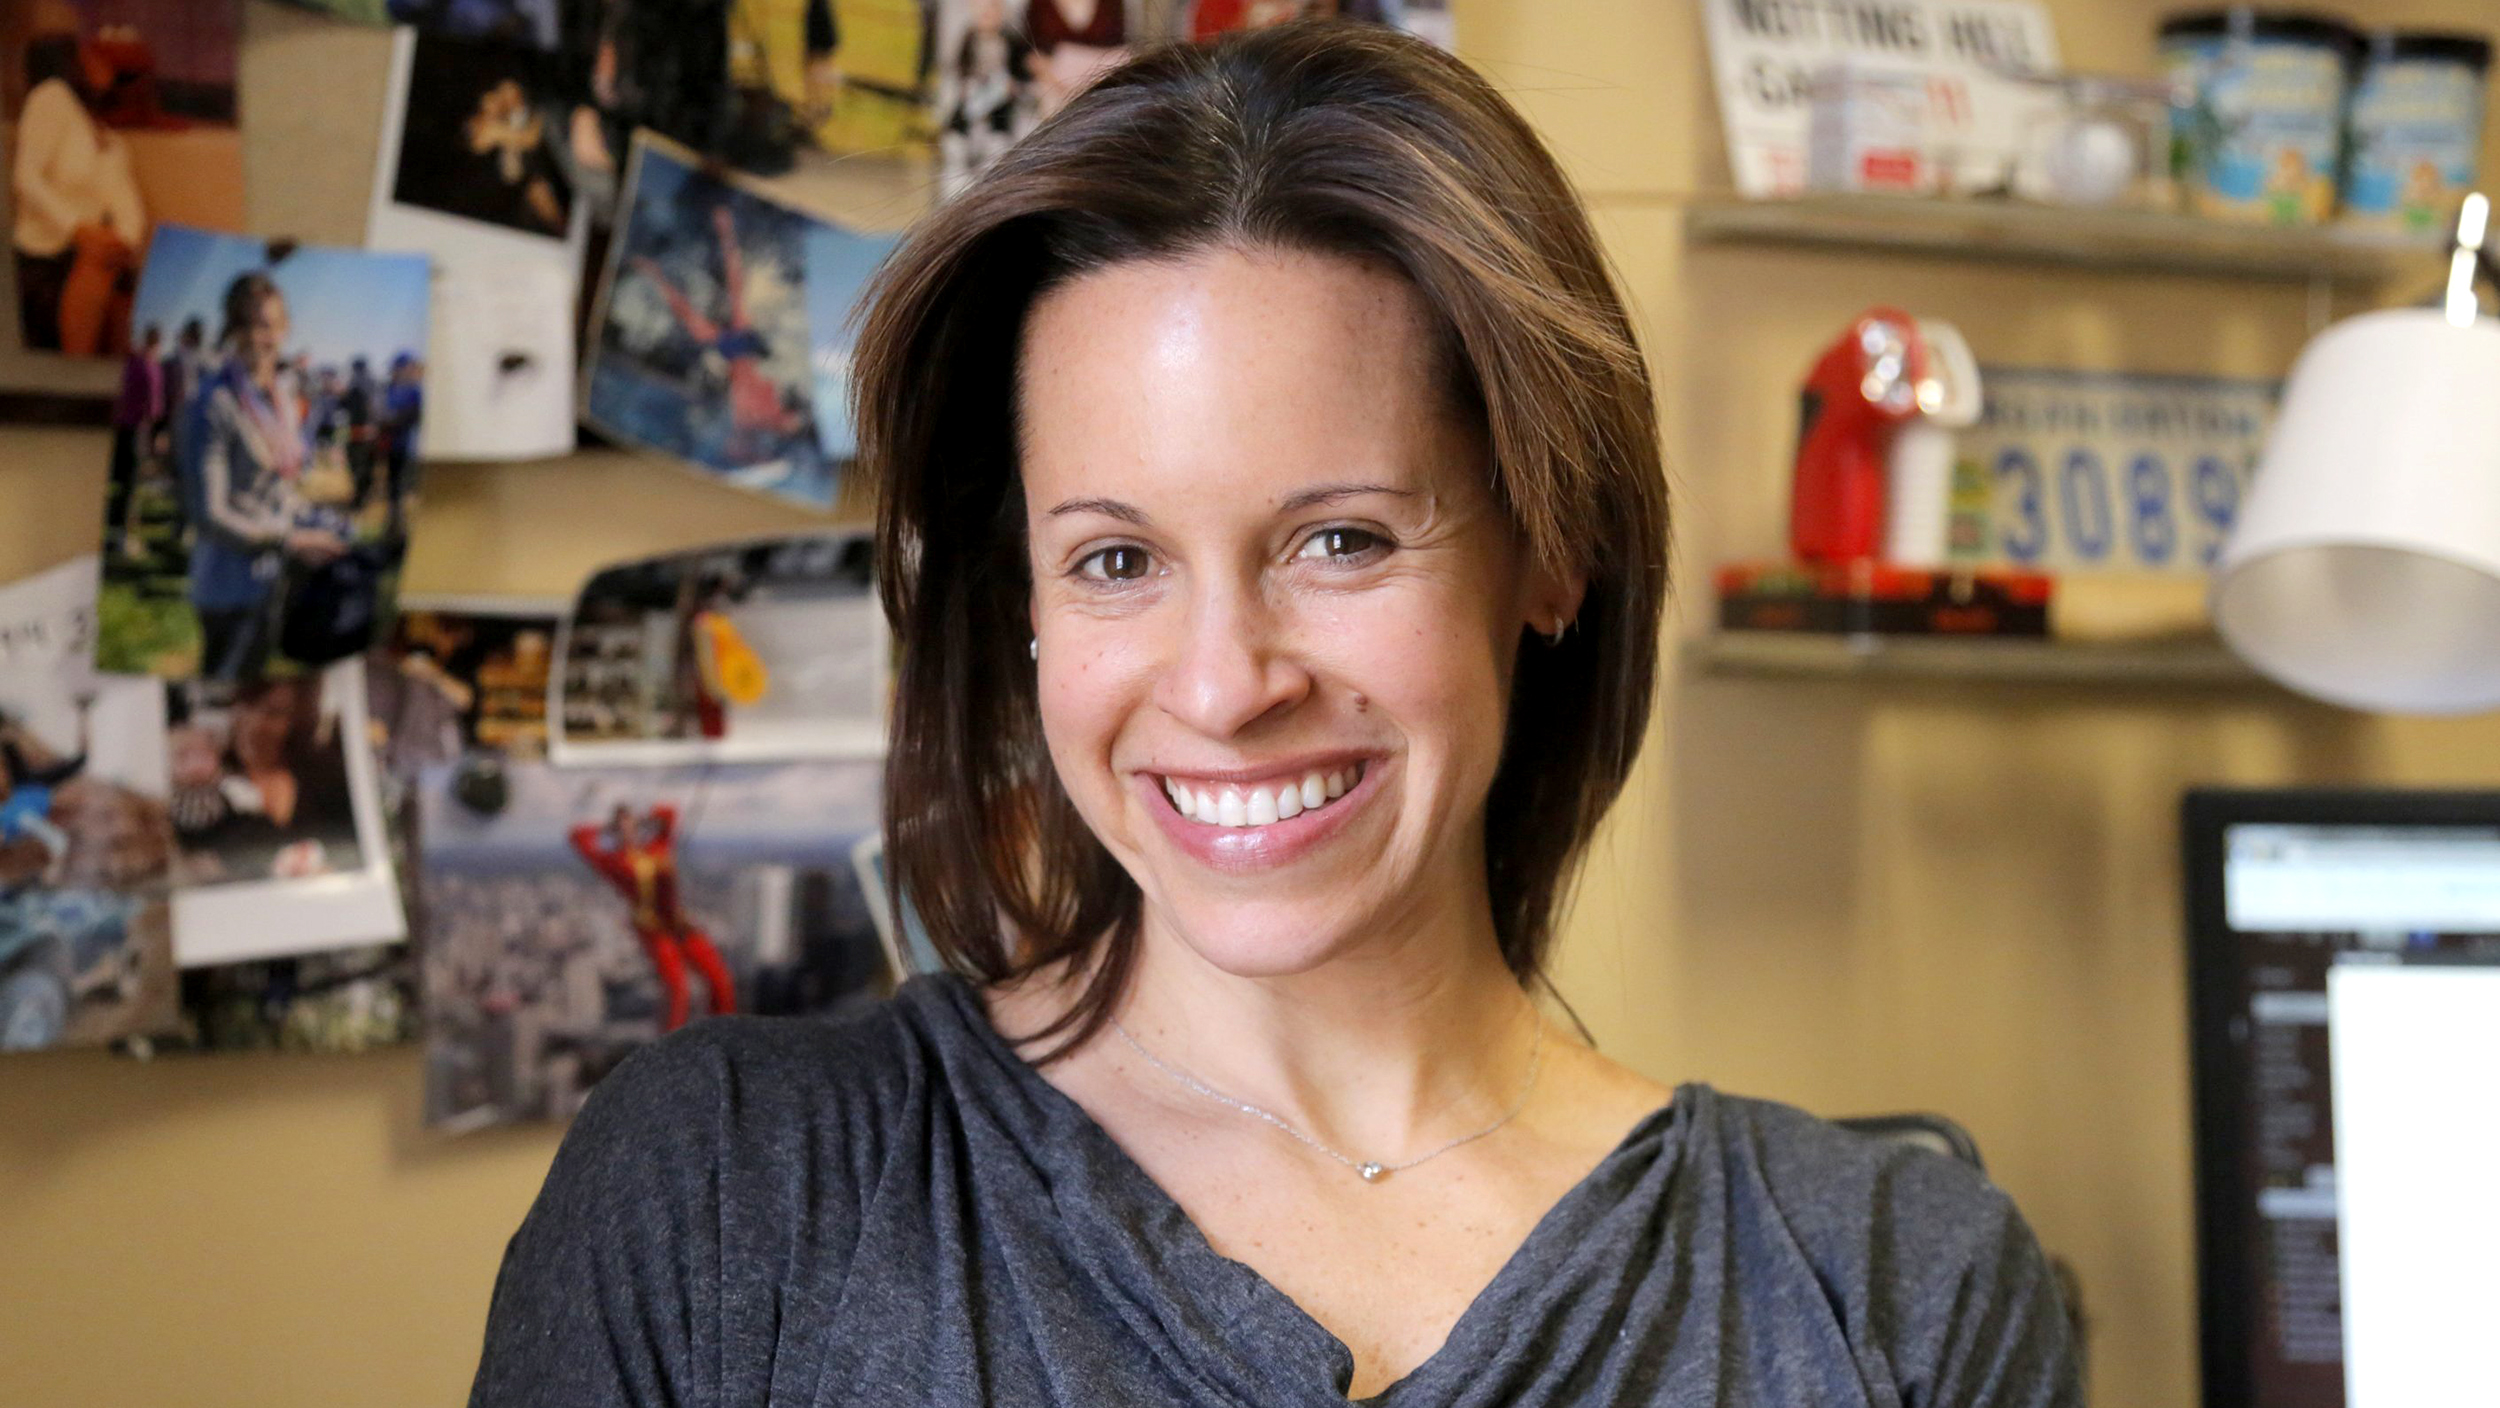 Get Motivated To Be The Best You Jenna Wolfe S 3 Favorite Quotes